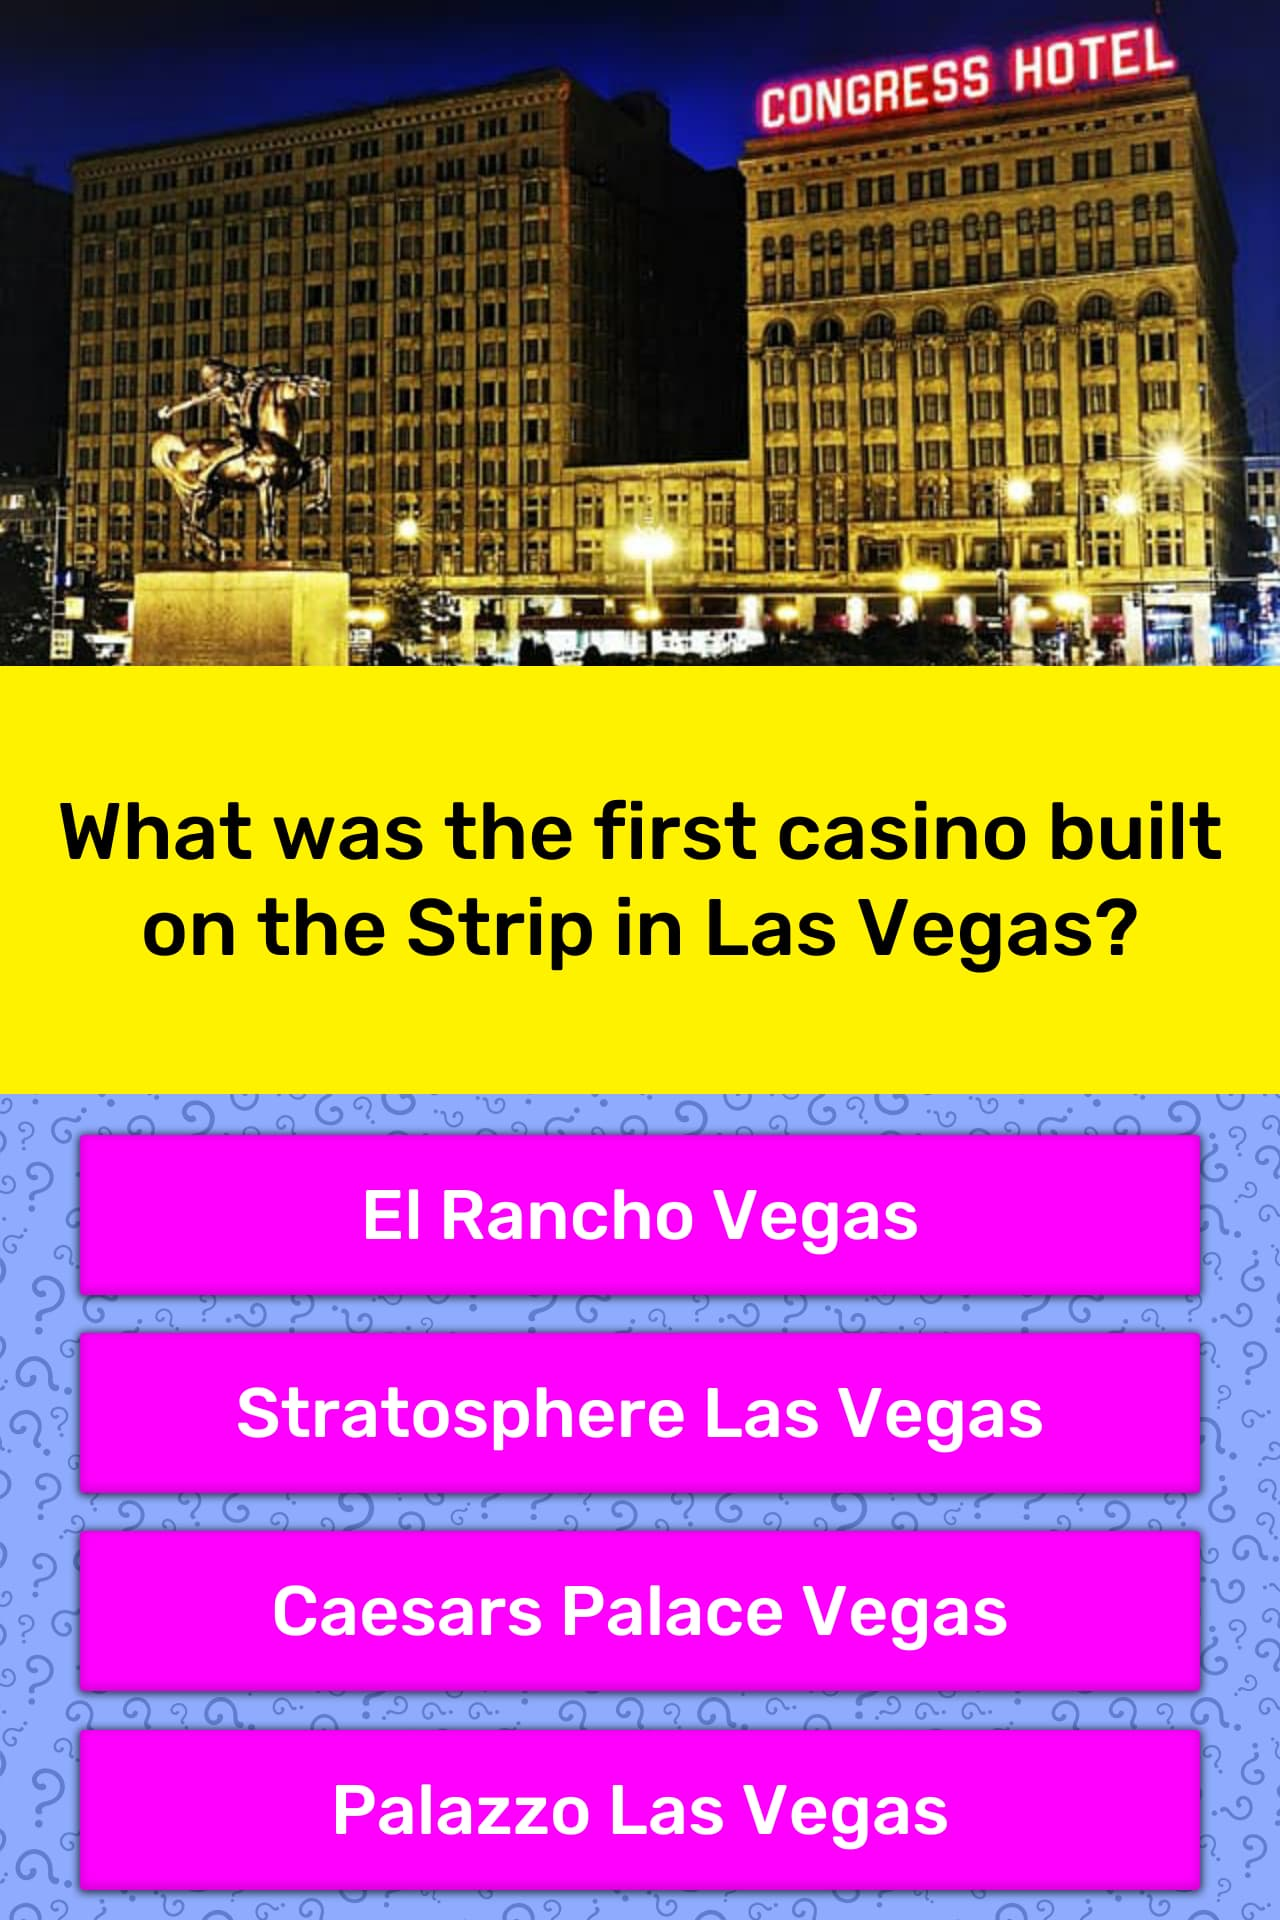 When Was The First Casino Built